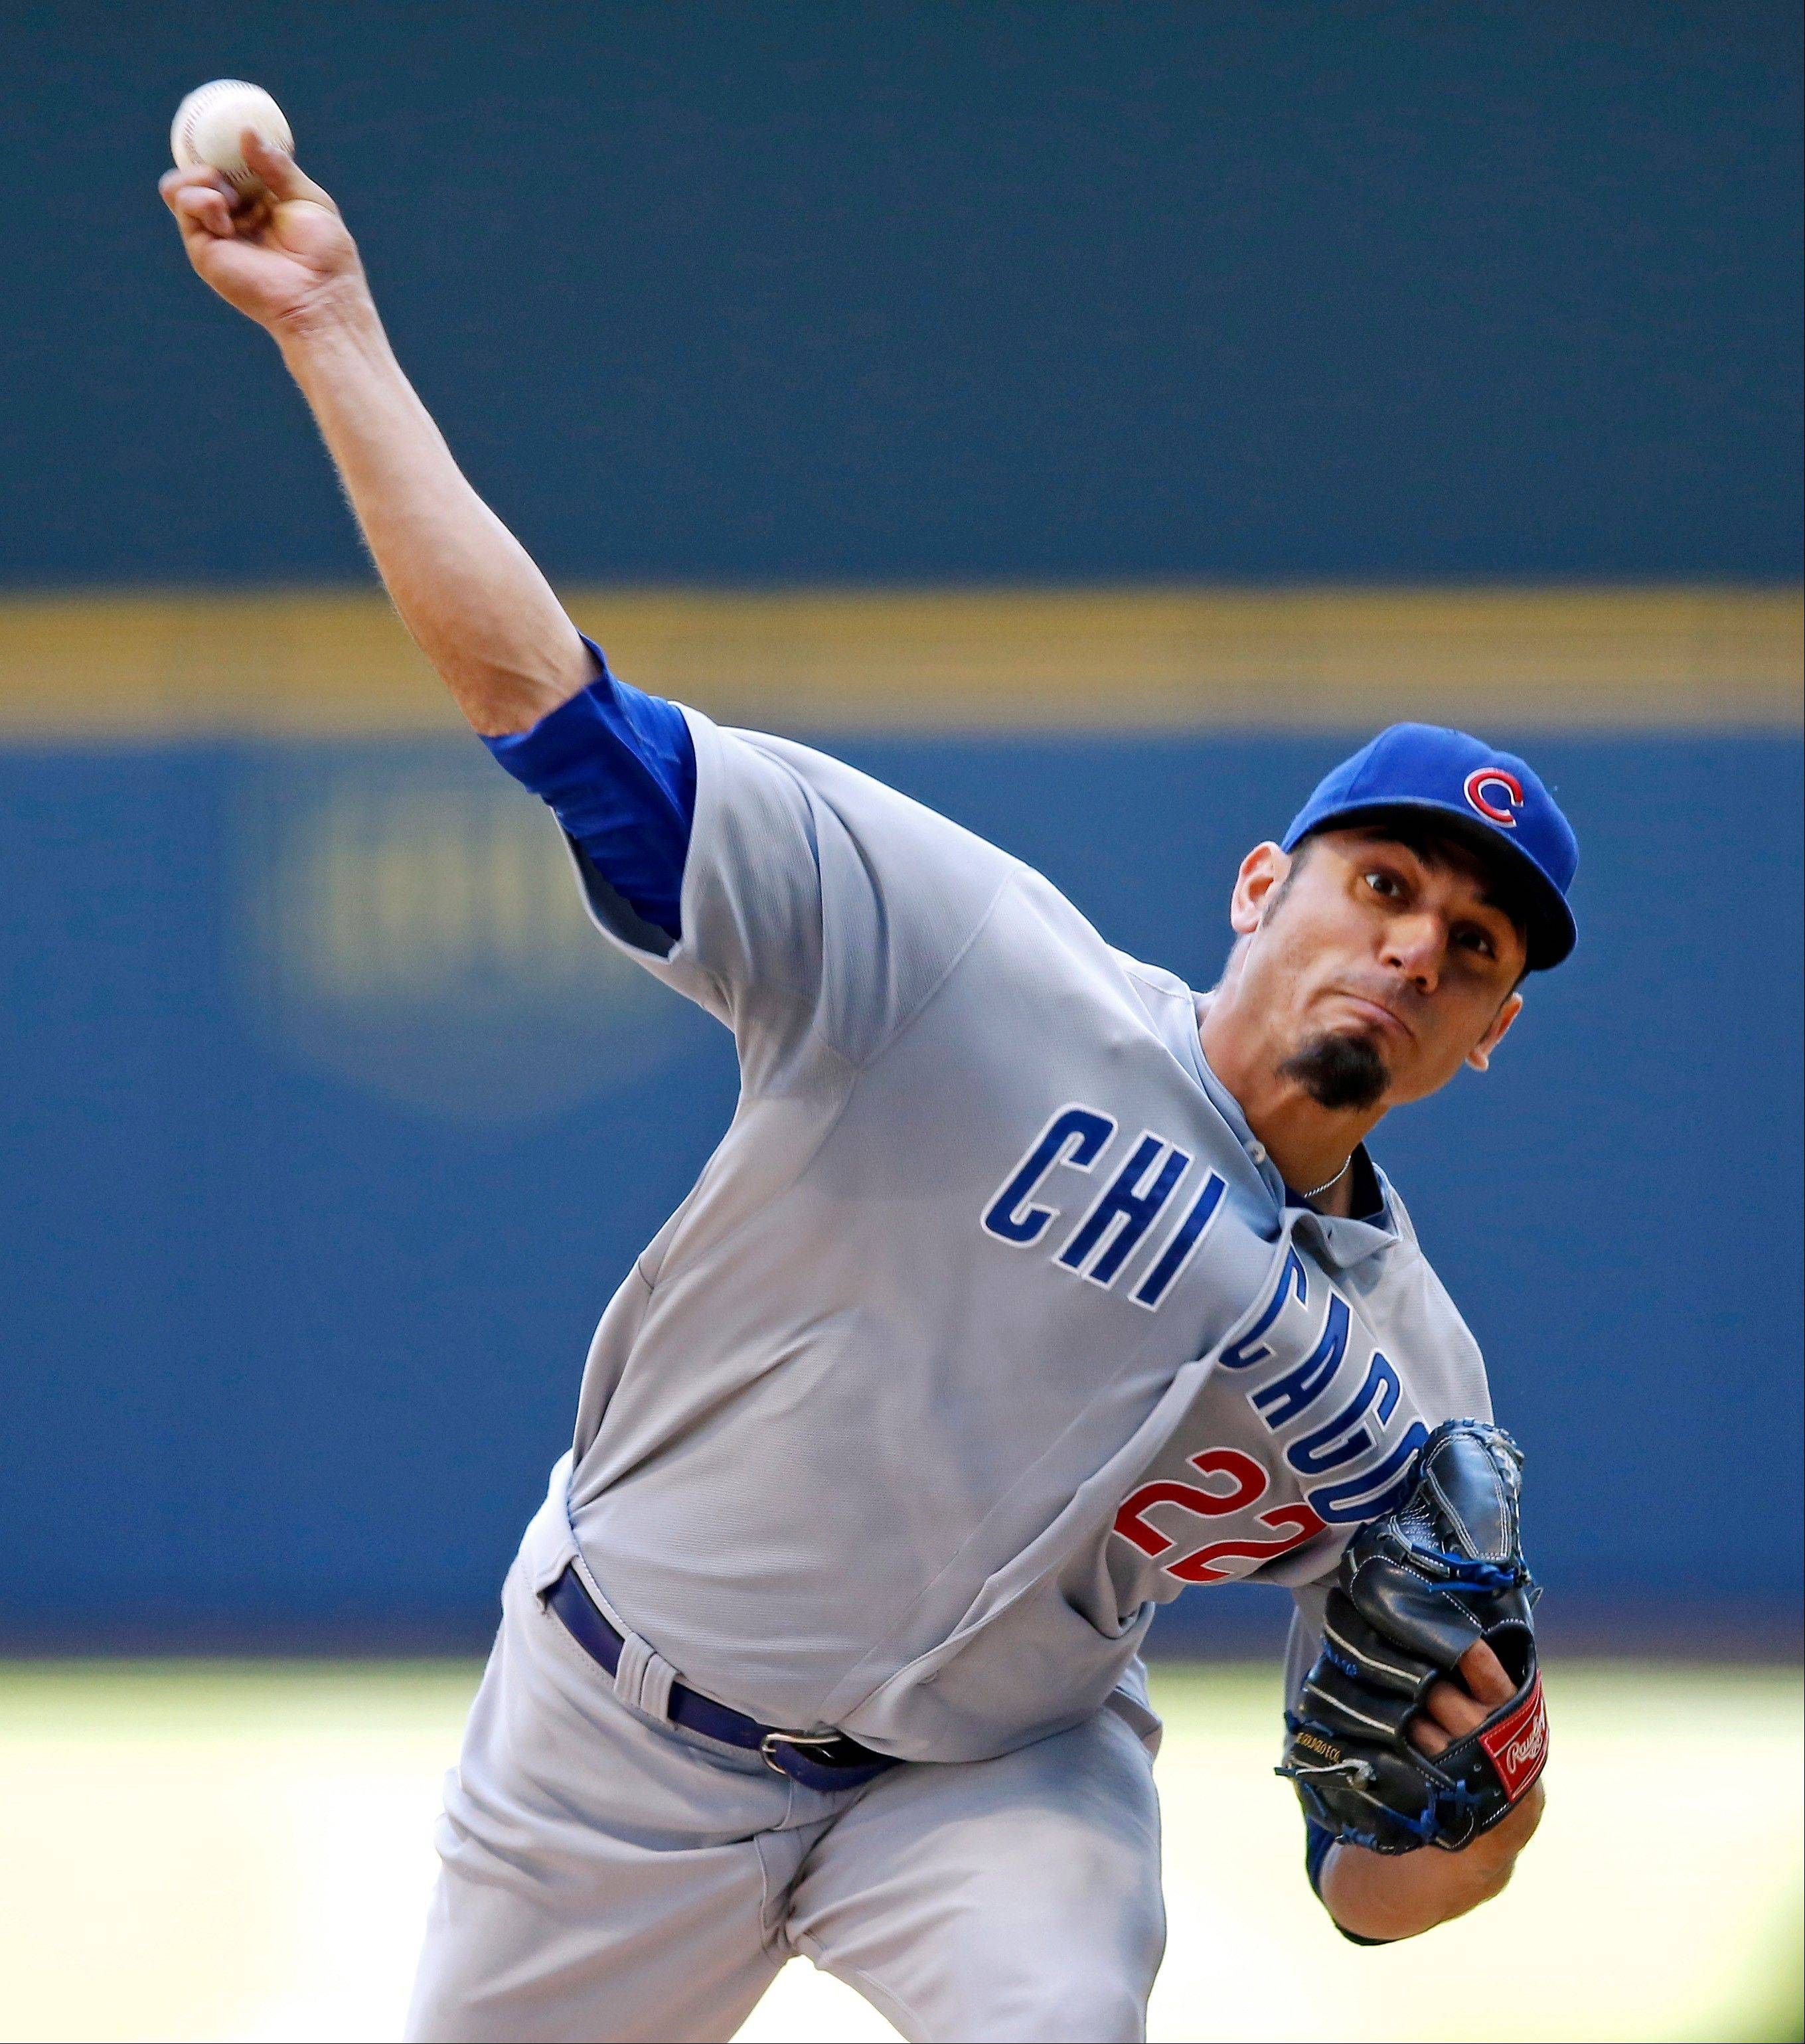 Matt Garza turned in another quality start for the Cubs on Thursday in Milwaukee.